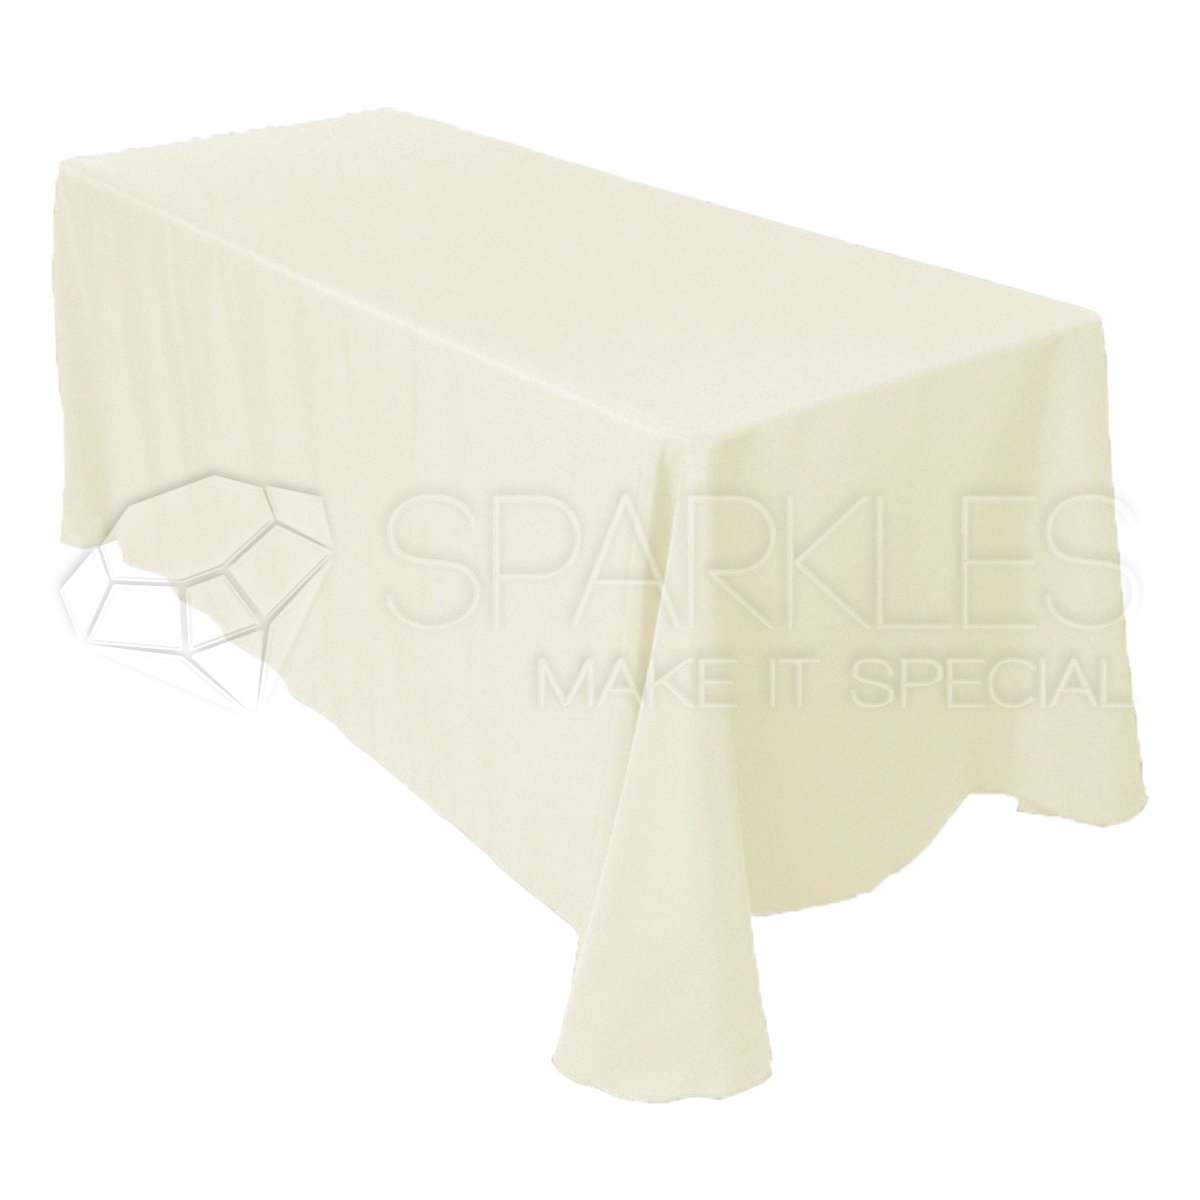 Sparkles Make It Special 10-pcs 90'' x 156'' Inch Rectangular Polyester Cloth Fabric Linen Tablecloth - Wedding Reception Restaurant Banquet Party - Machine Washable - Choice of Color - Ivory